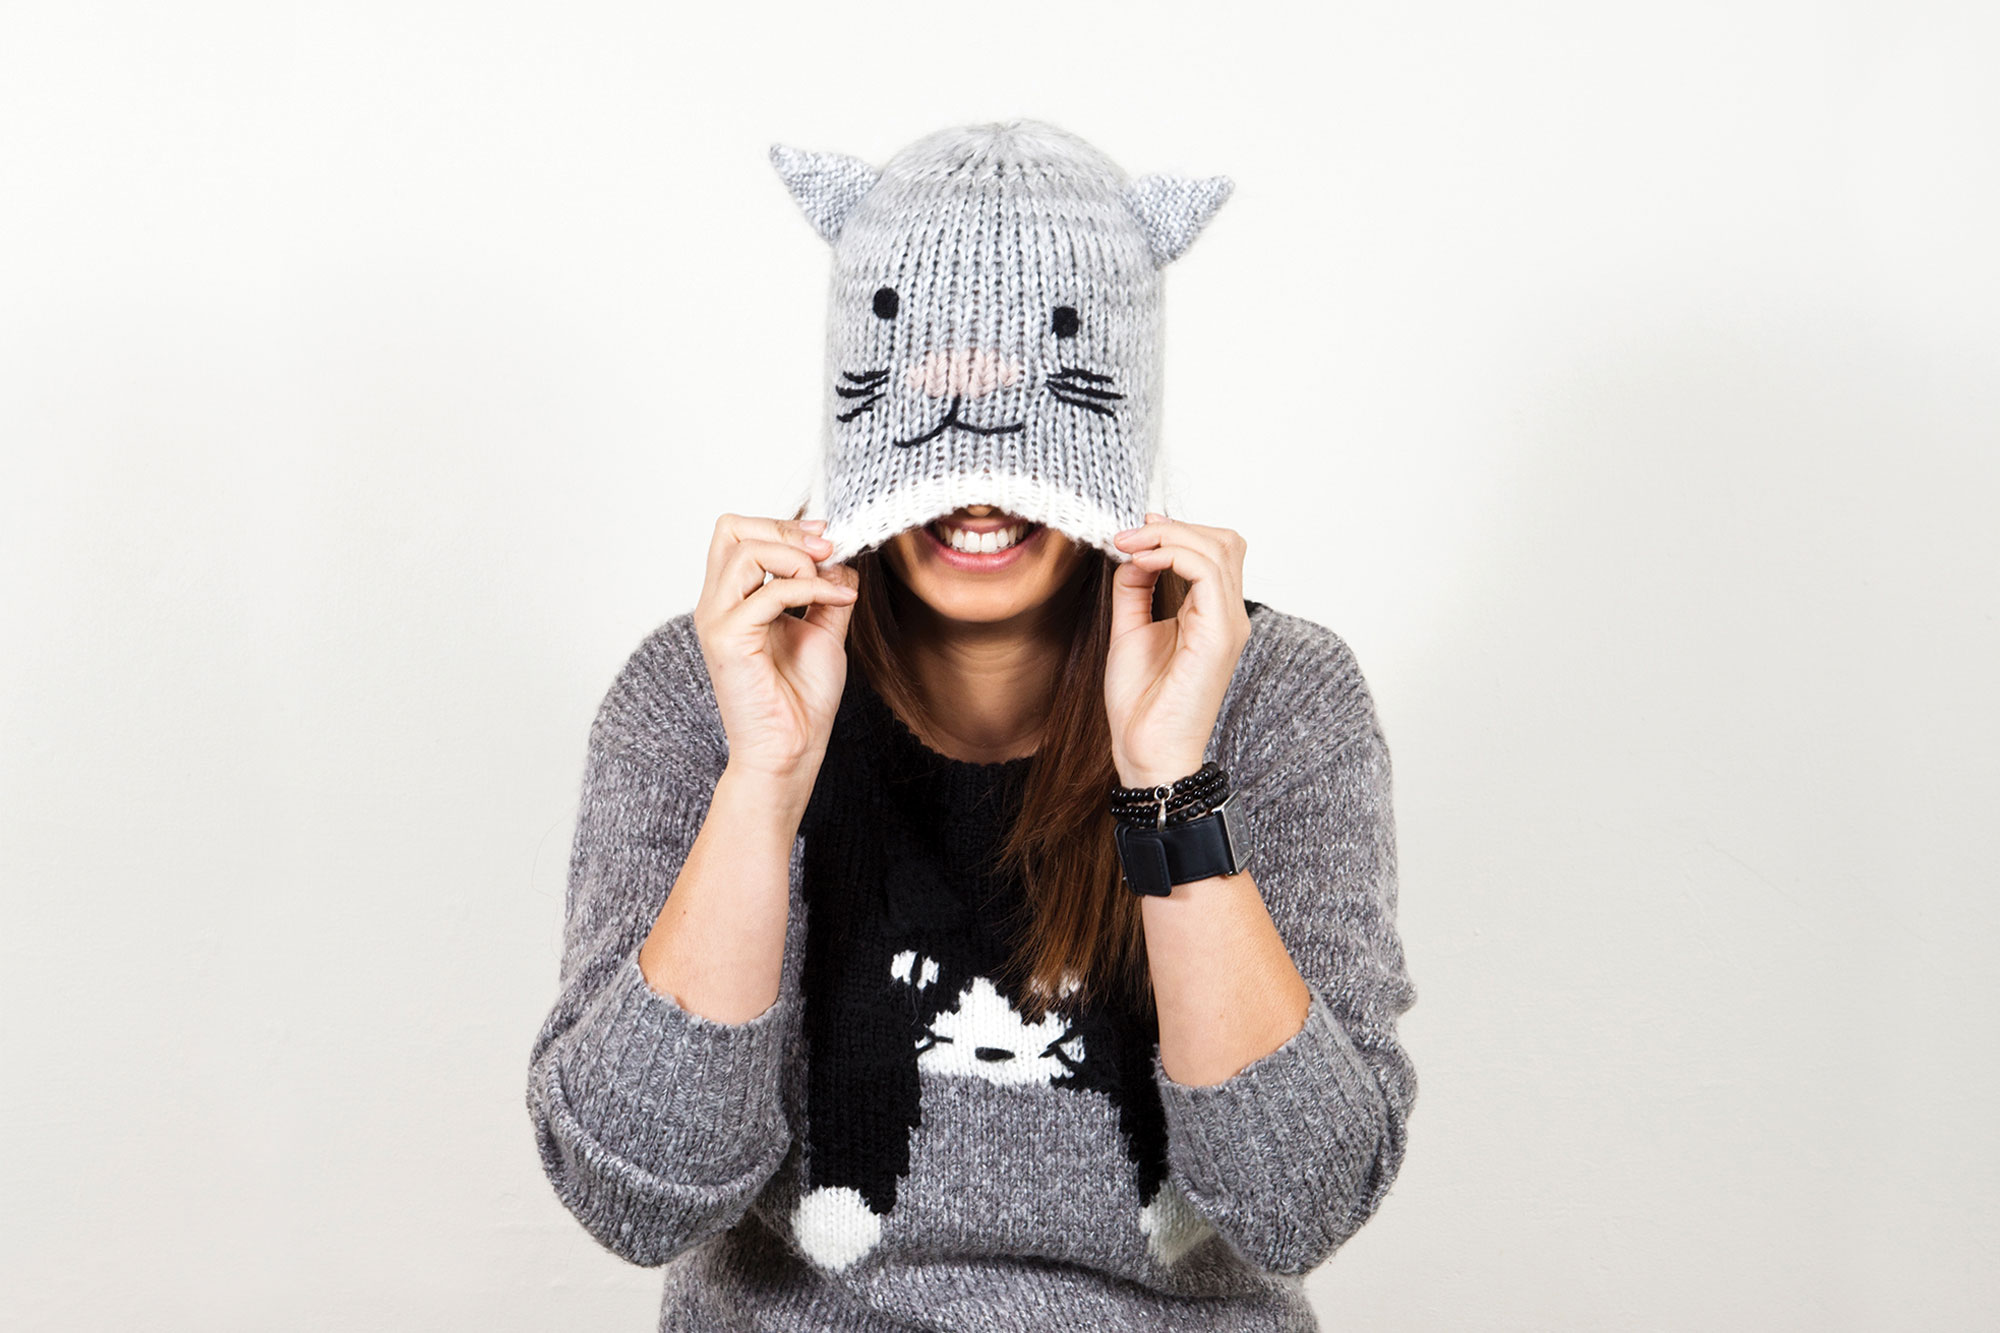 Kylie, wearing a grey sweater with a cat image down the front, and a light grey cat shaped beanie pulled over her eyes with her hands. She is grinning.